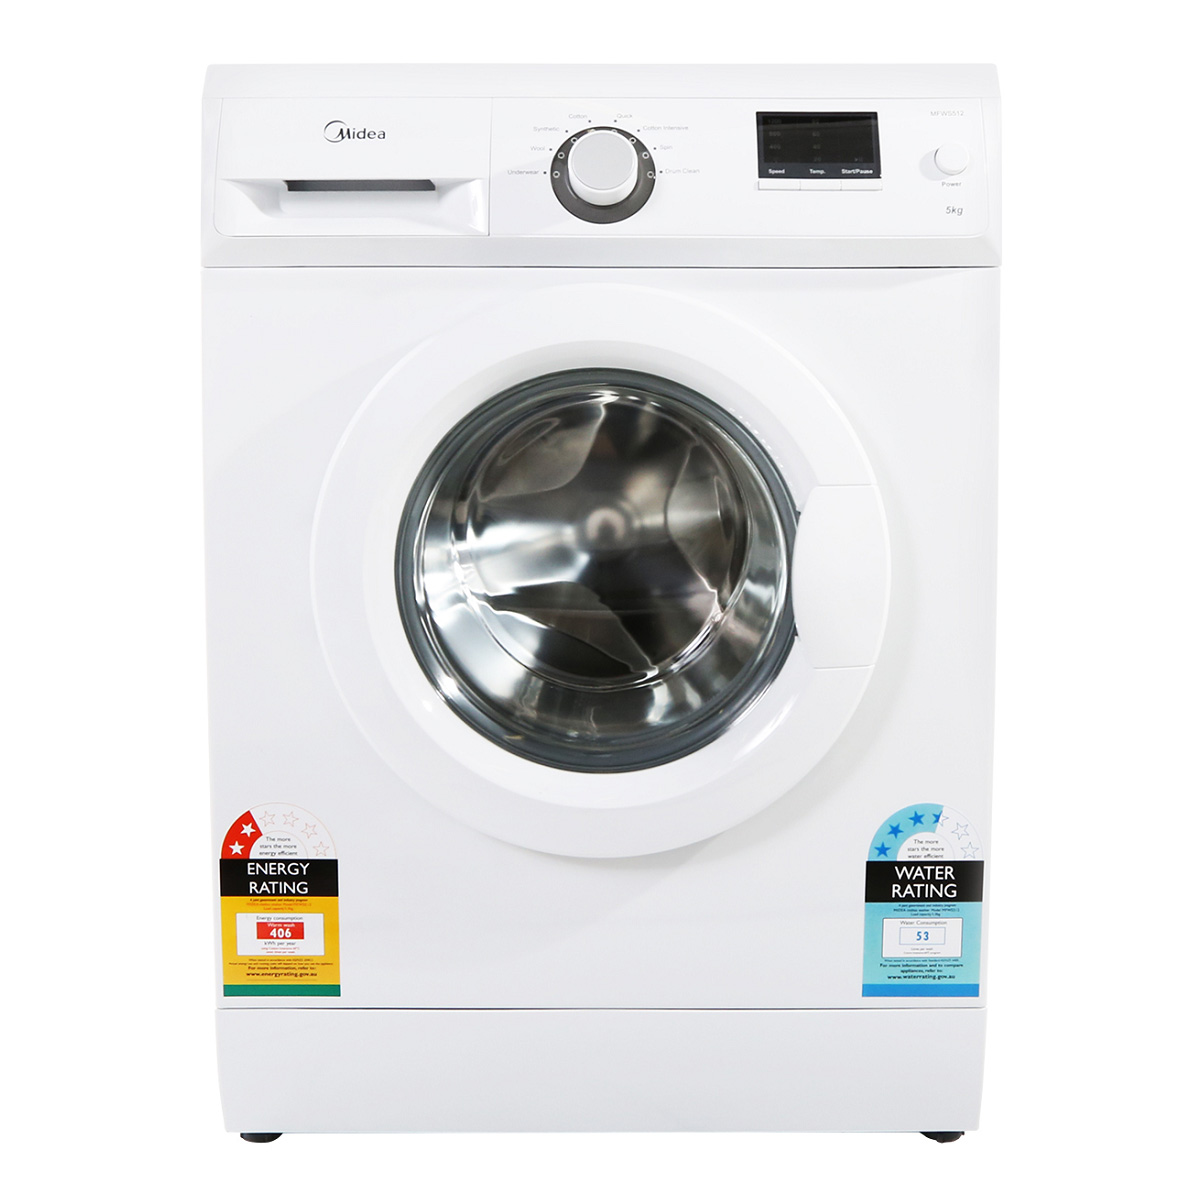 Midea MFWS512 5kg Front Load Washing Machine